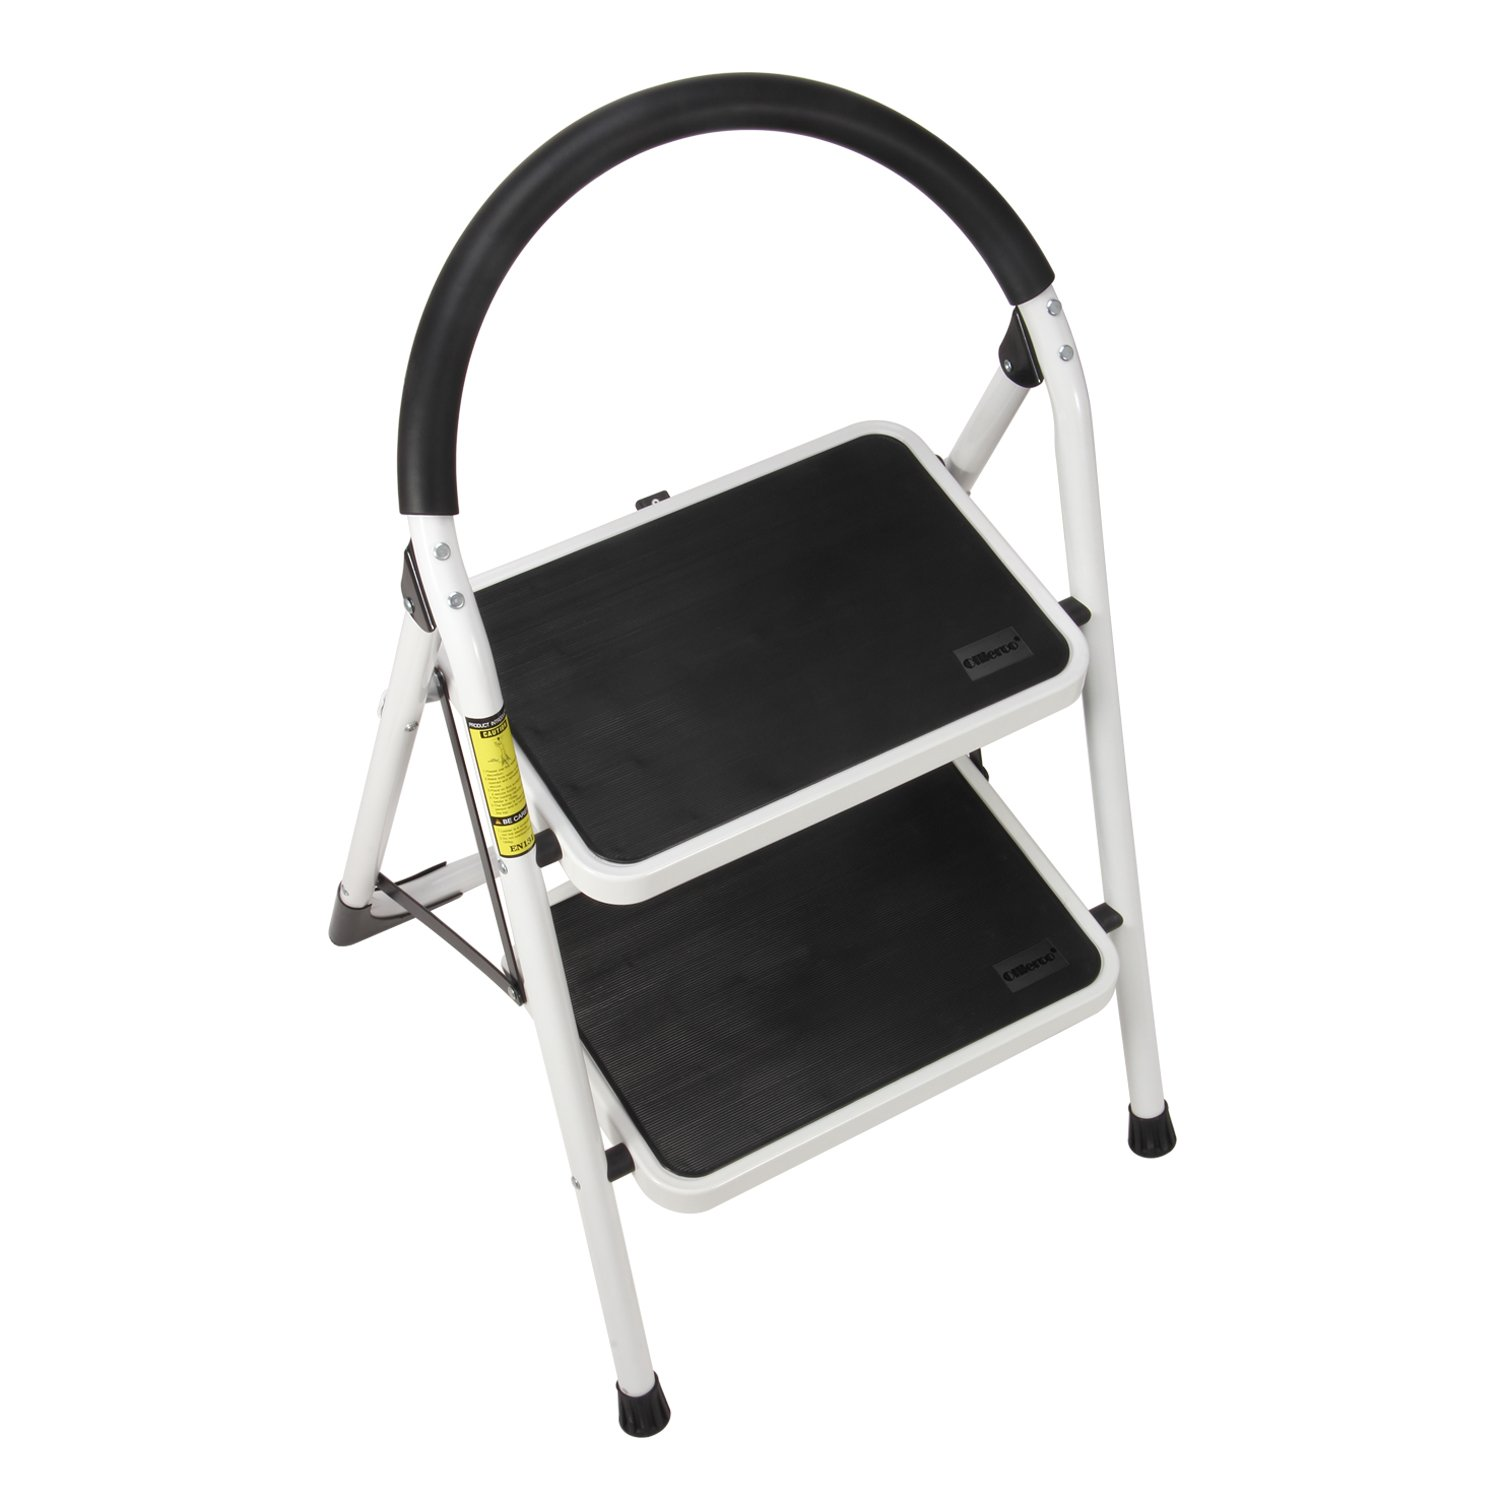 Ollieroo Step Stool EN131 Steel Folding 2 Step Ladder with Comfy Grip Handle Anti-slip Step Mon-marring Feet 330-pound Capacity White by Ollieroo (Image #2)